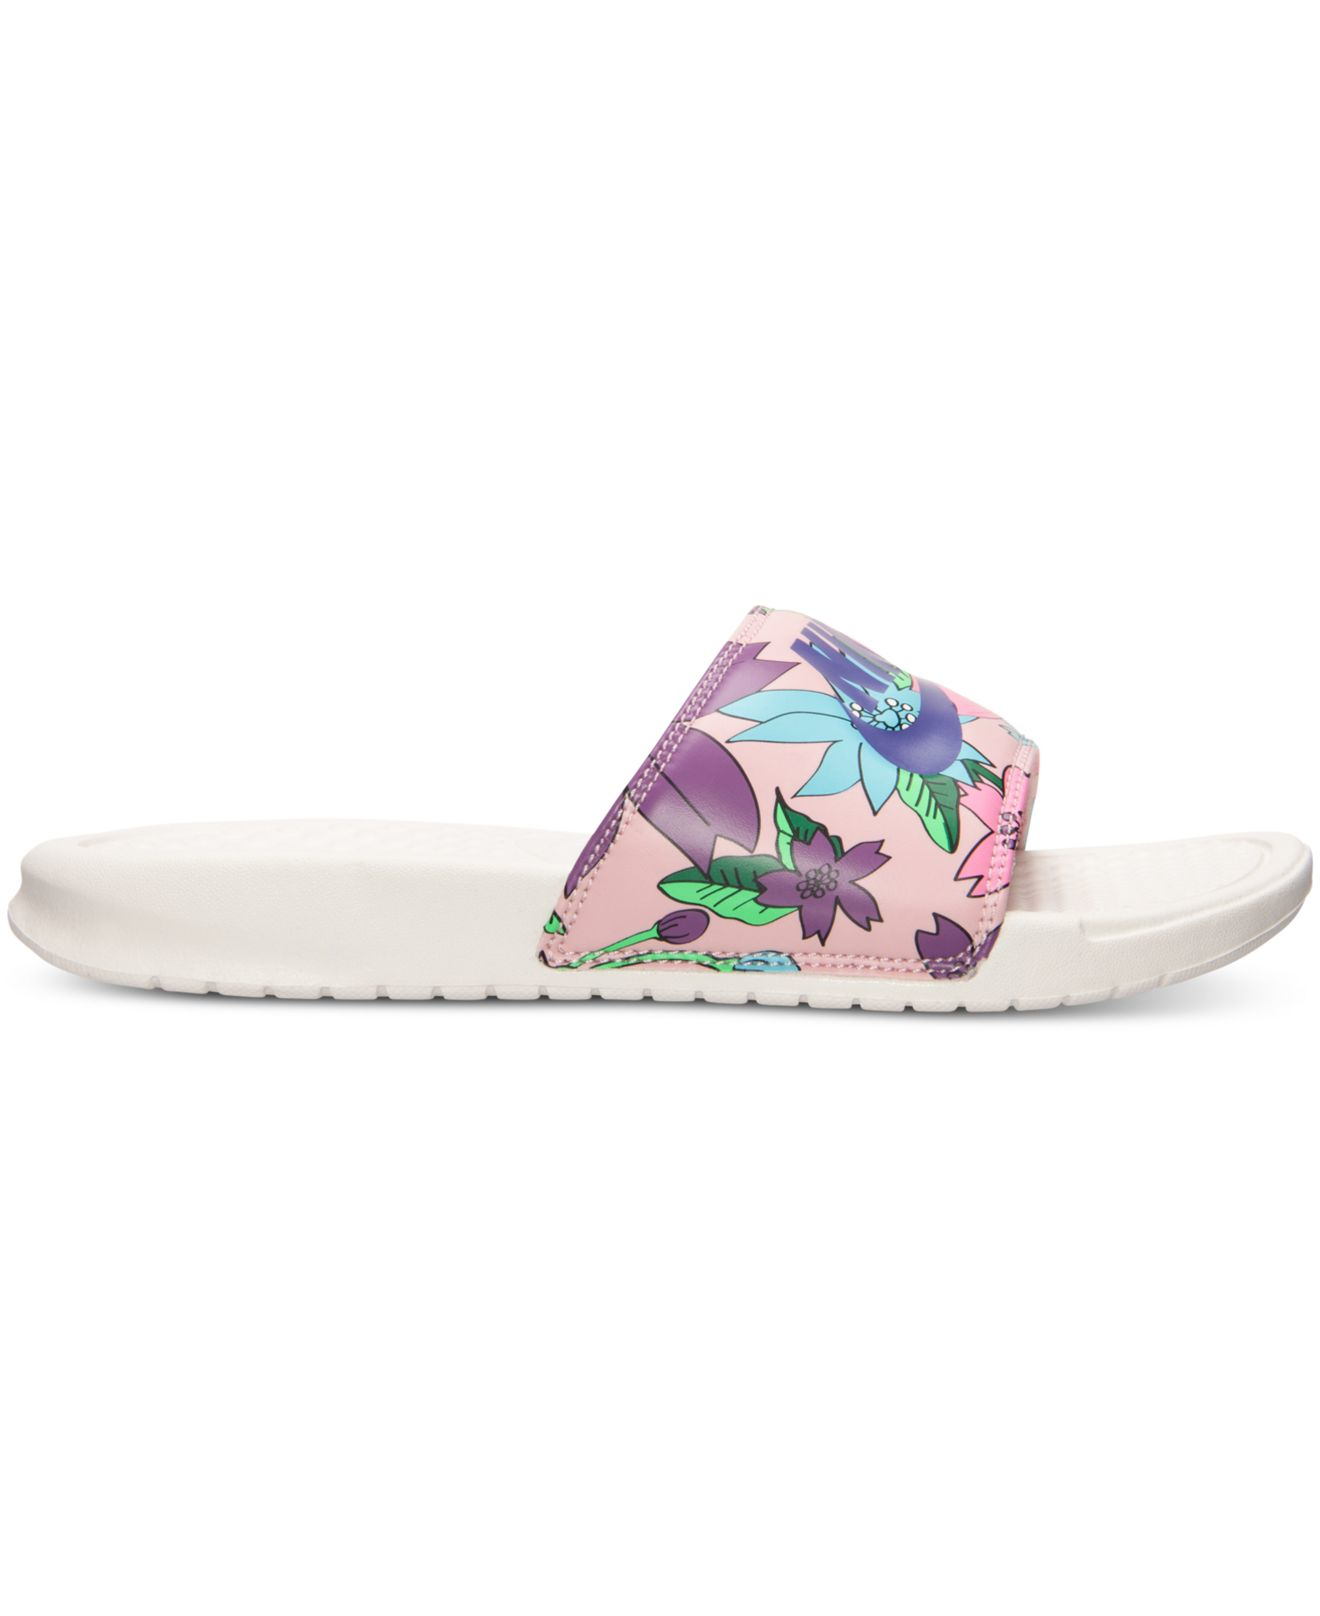 ff7b74ee6 Nike Women's Benassi Jdi Print Slide Sandals From Finish Line in ...